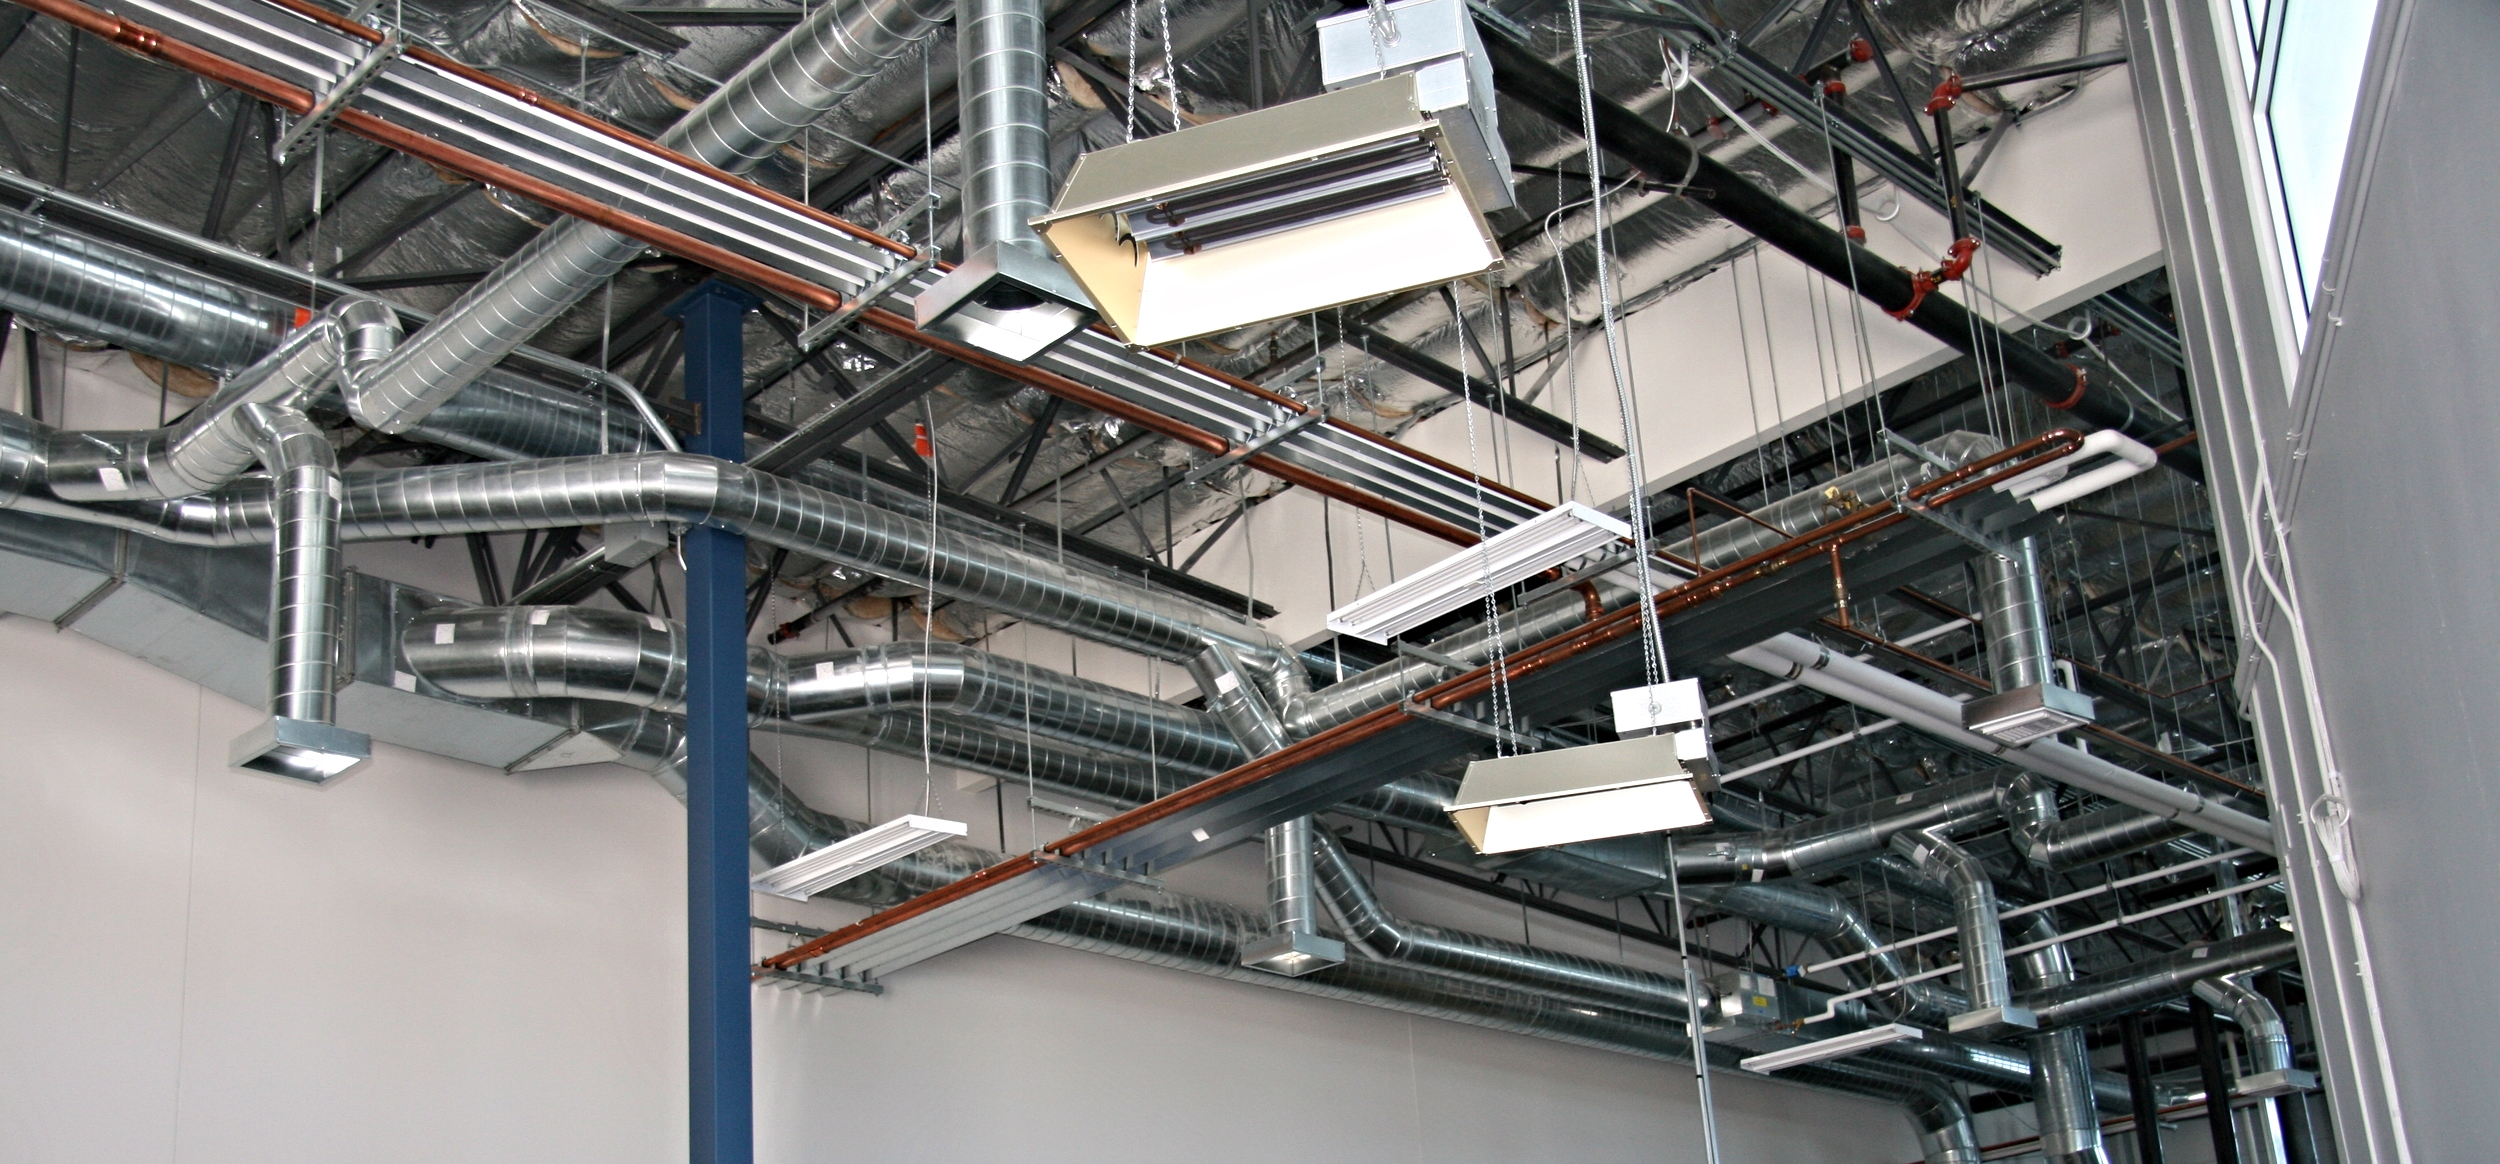 HVAC systems for Specialty Silicone